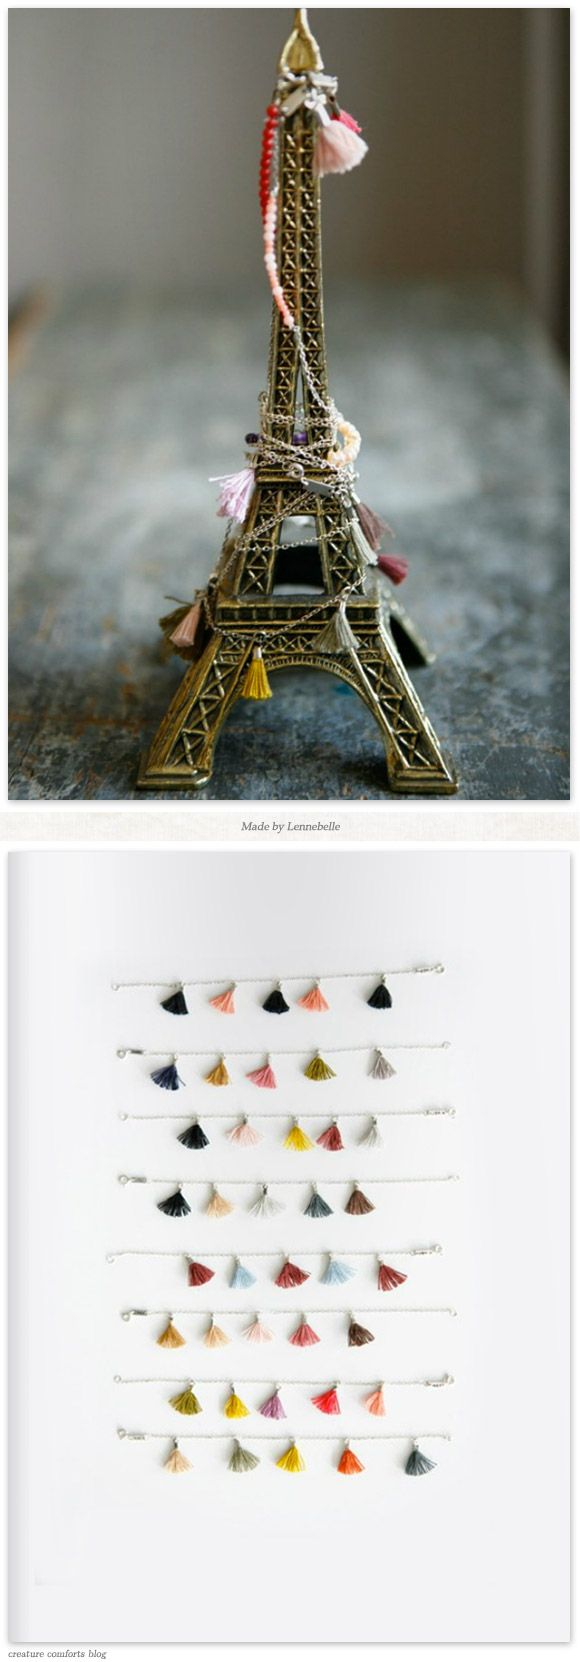 In Good Company: Made byLennebelle - Home - Creature Comforts - daily inspiration, style, diy projects + freebies  http://www.lennebelle.com/sales/